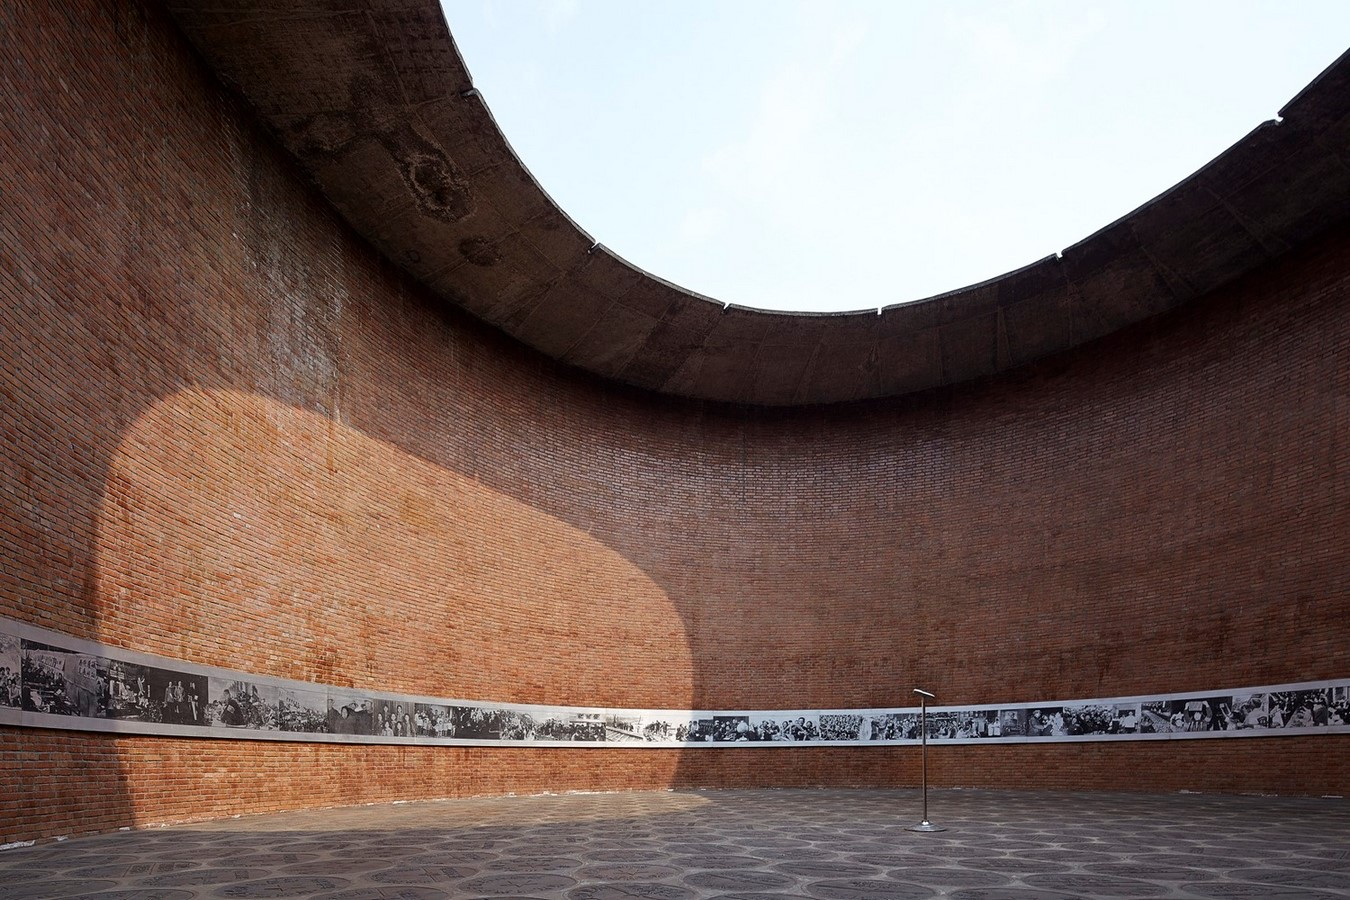 Clock Museum Of the Cultural Revolution by Jiakun Architects- Order within the Chaos - Sheet10